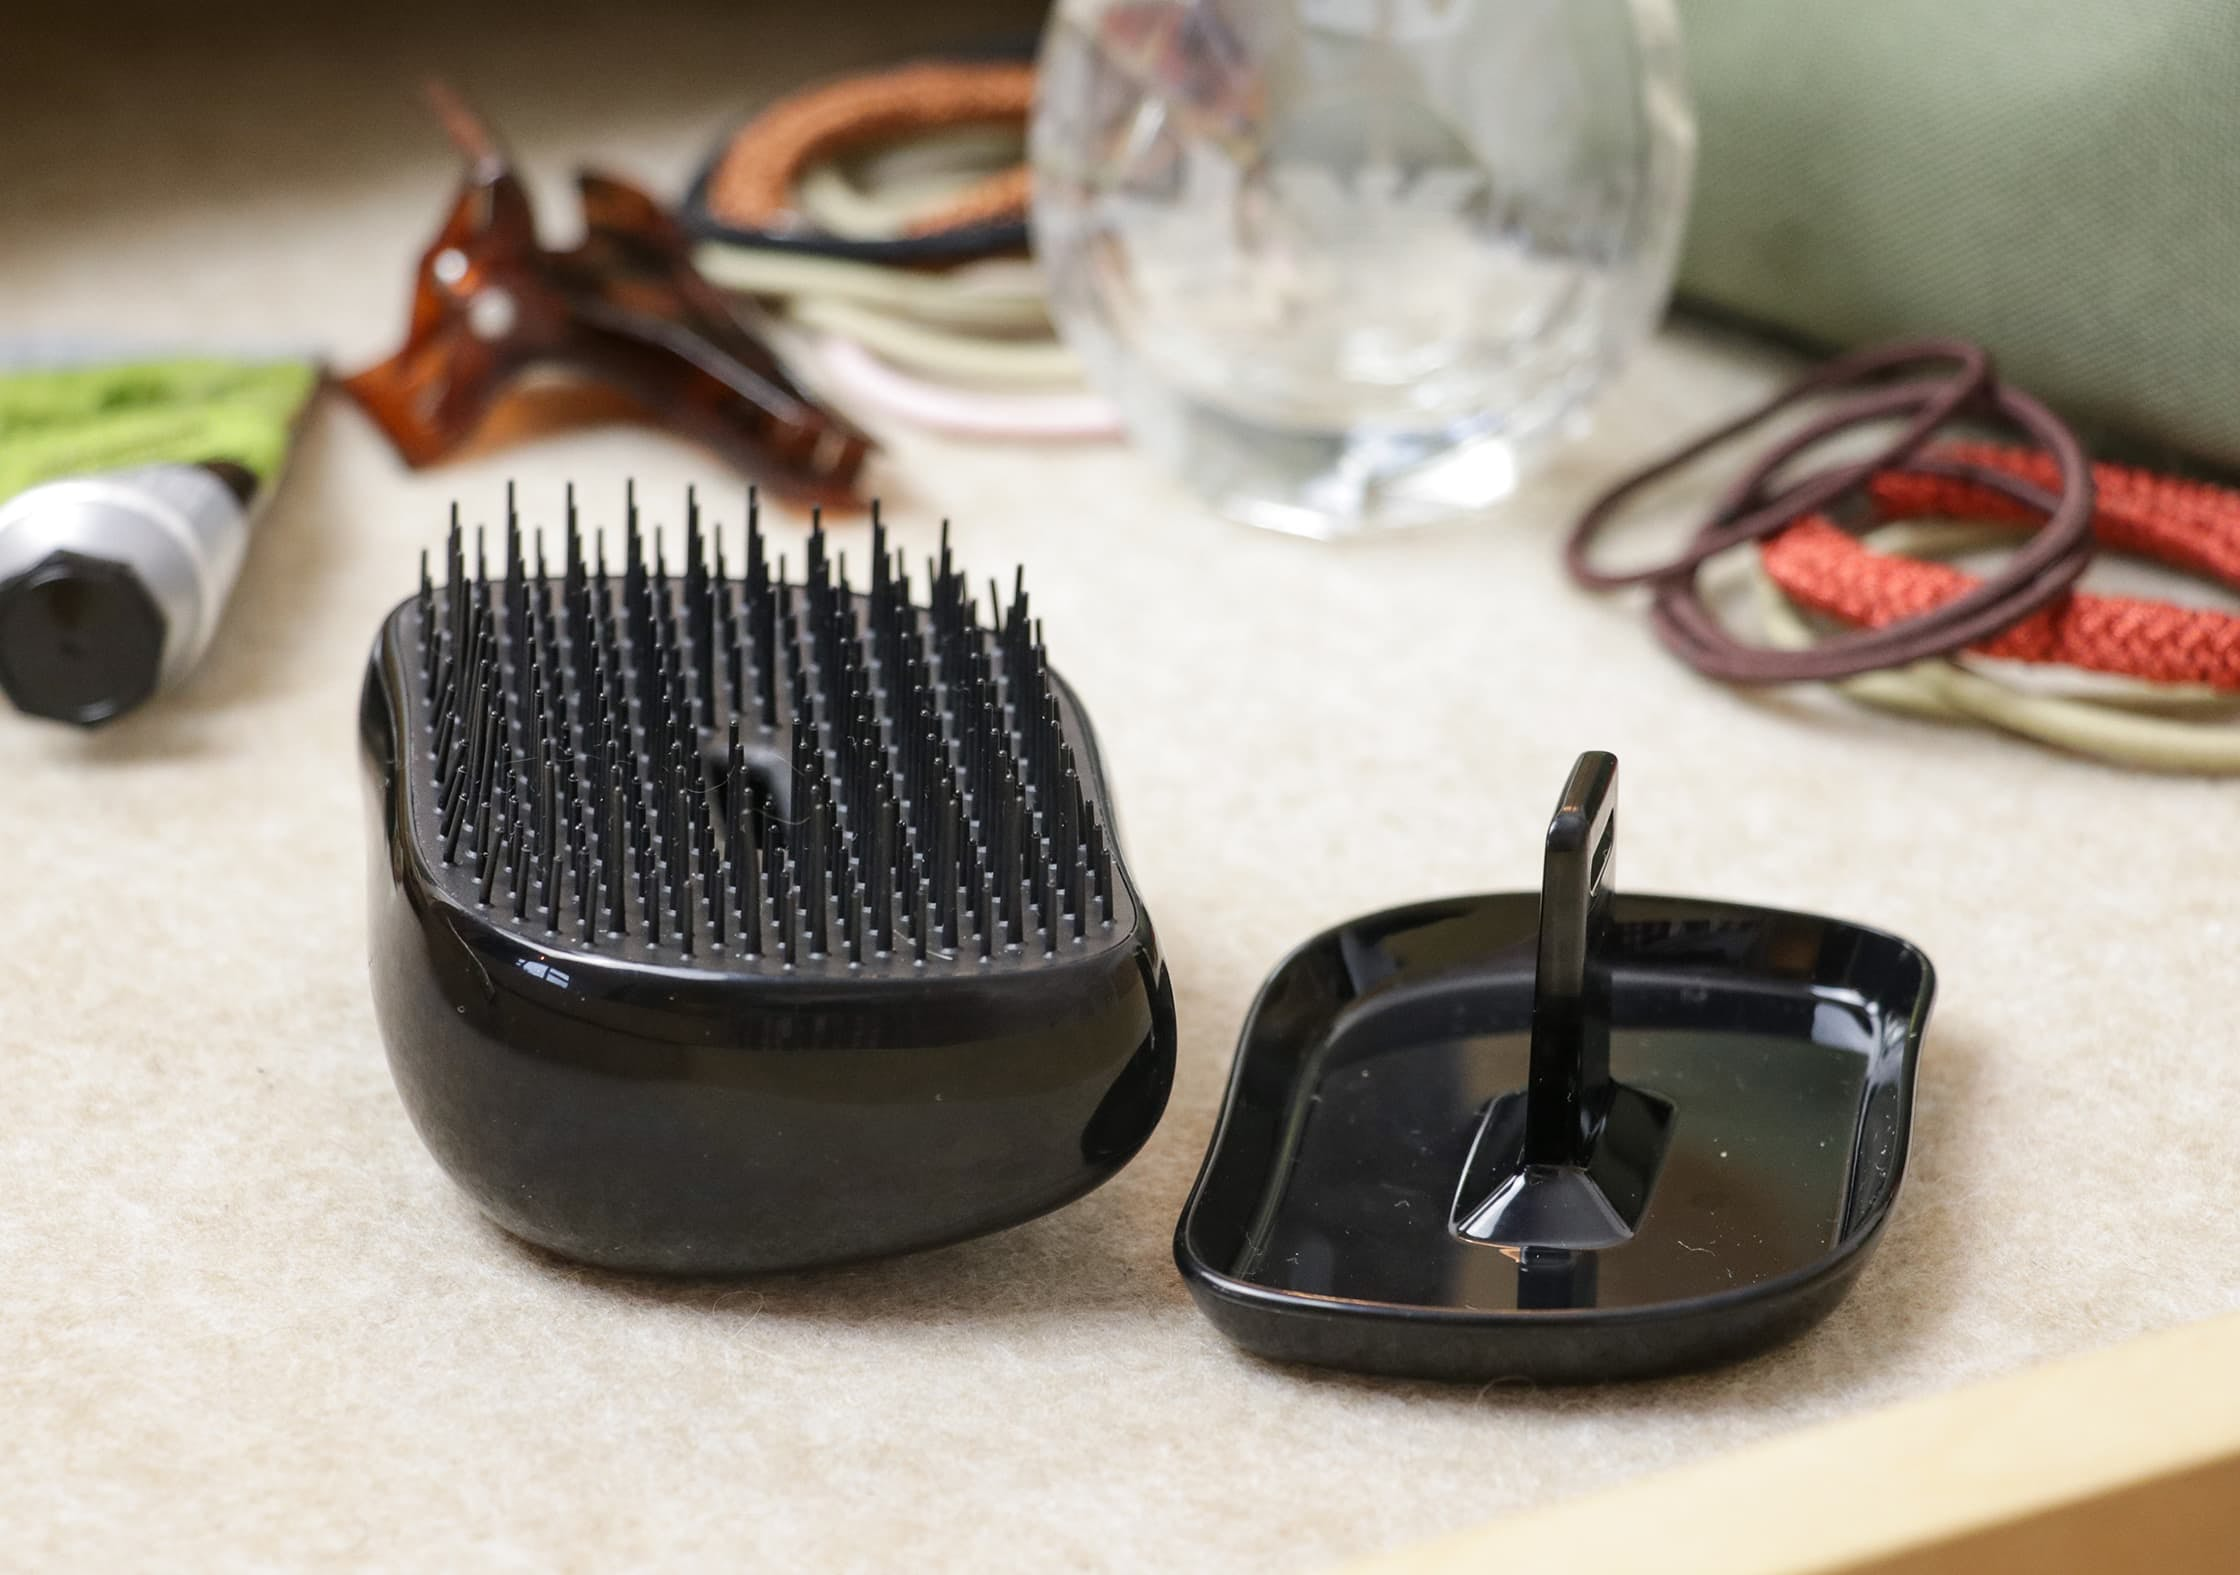 Tangle Teezer Compact Styler At Home In The UK